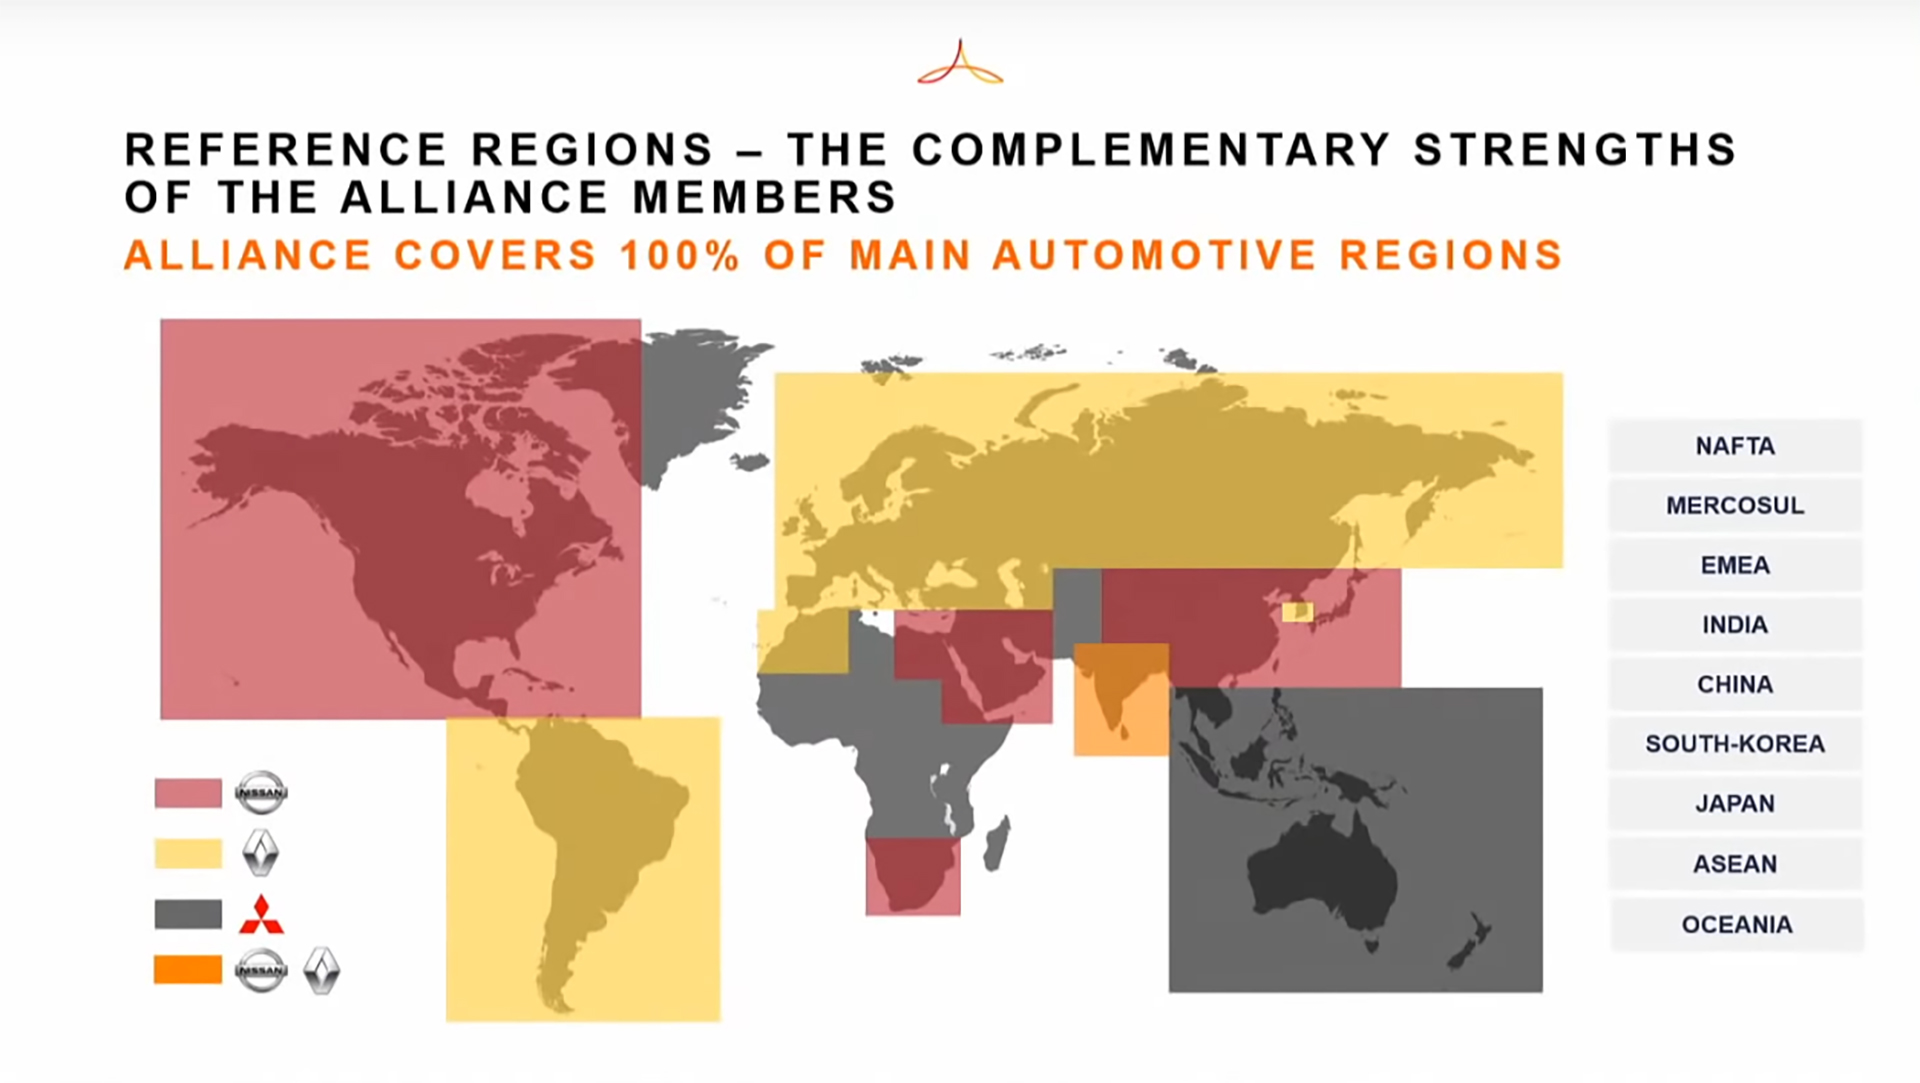 Alliance Renault Nissan Mitsubishi - 2020 - Alliance new cooperation business model - map regions